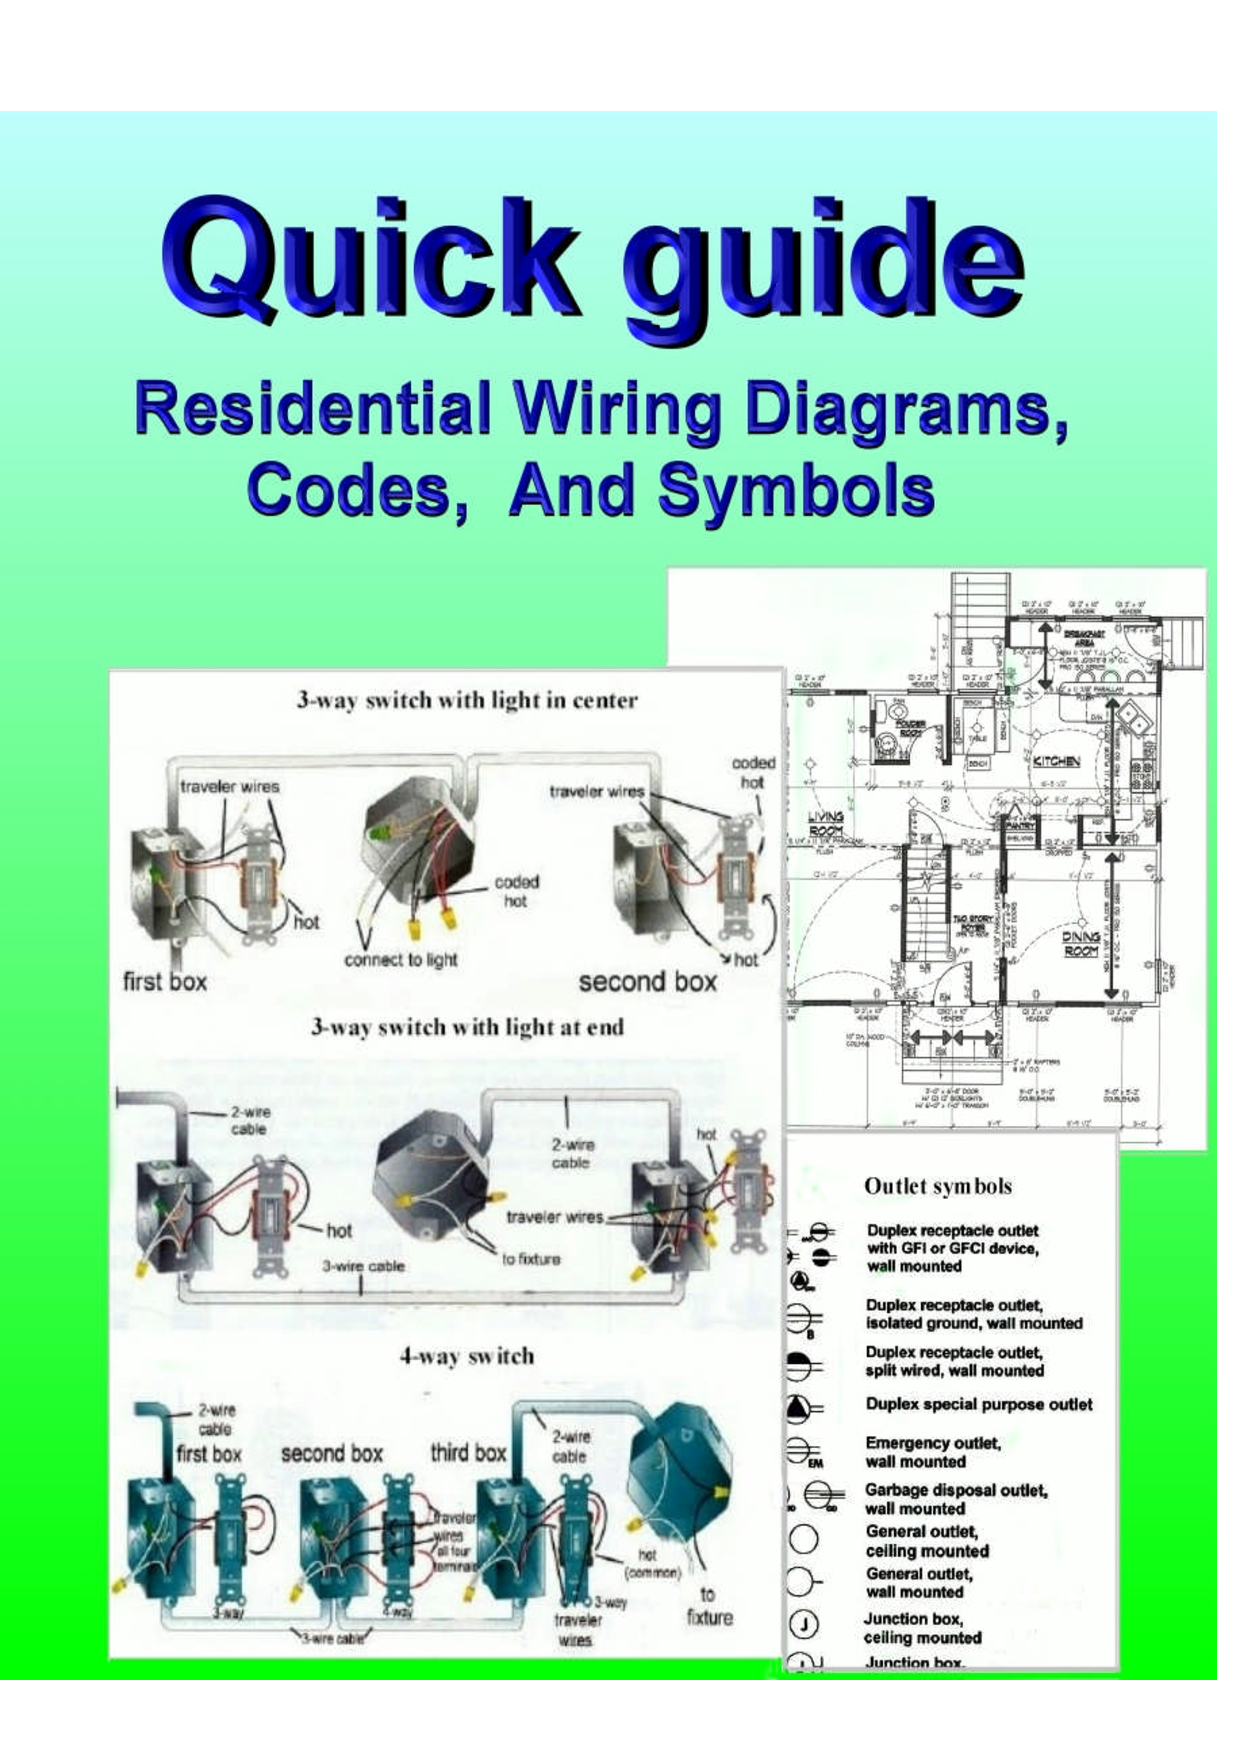 new household electric circuit diagram wiringdiagram diagramming diagramm visuals visualisation graphical [ 1240 x 1754 Pixel ]